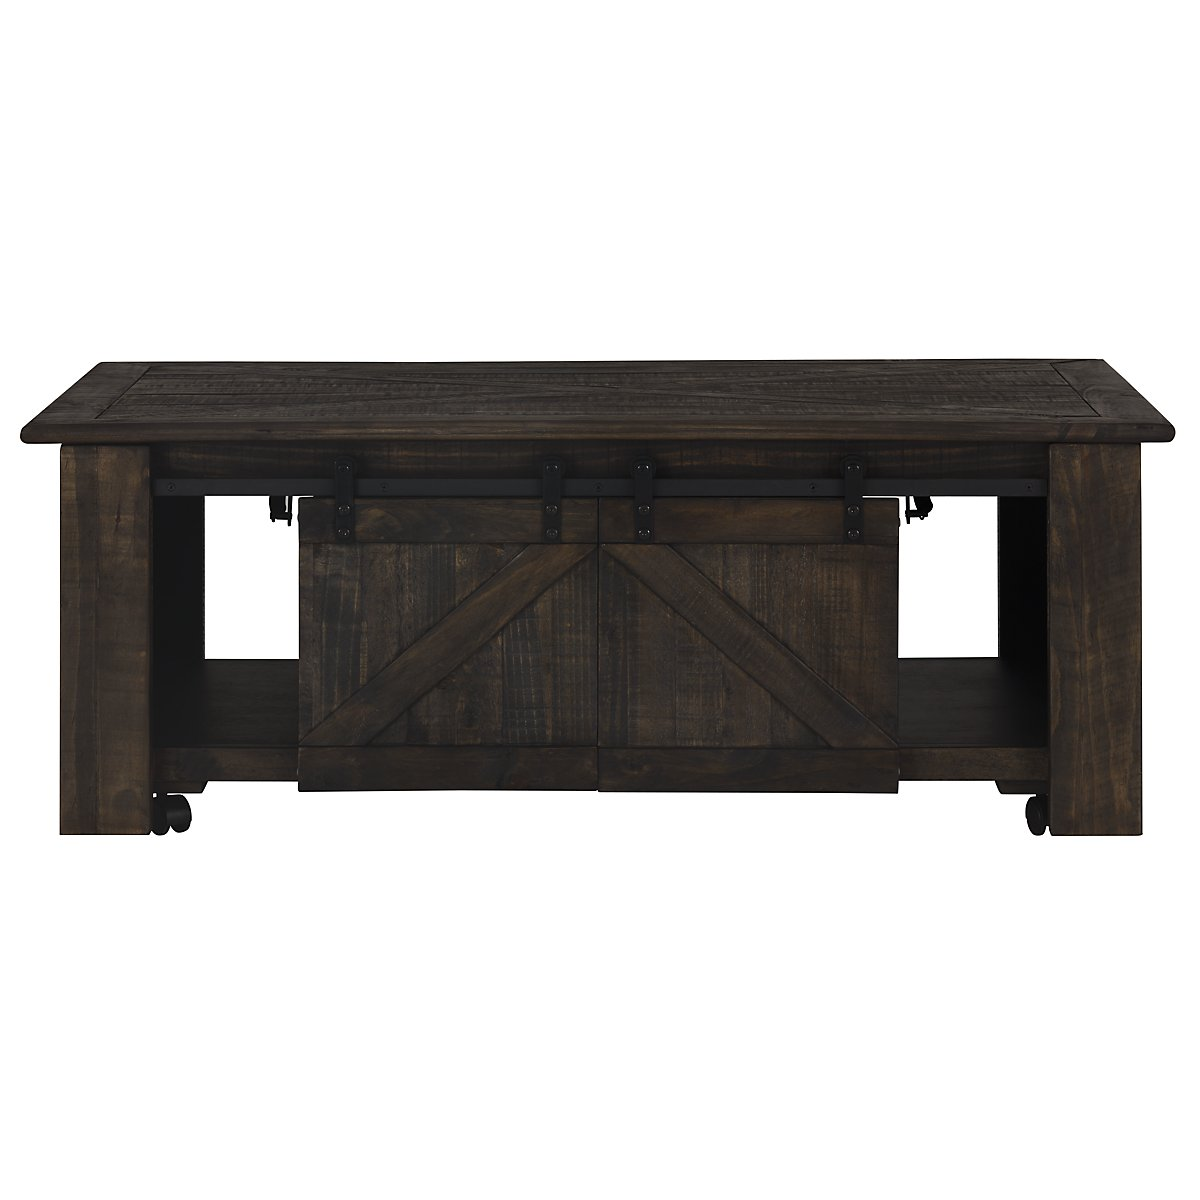 Garrett Dark Tone Wood Lift Coffee Table